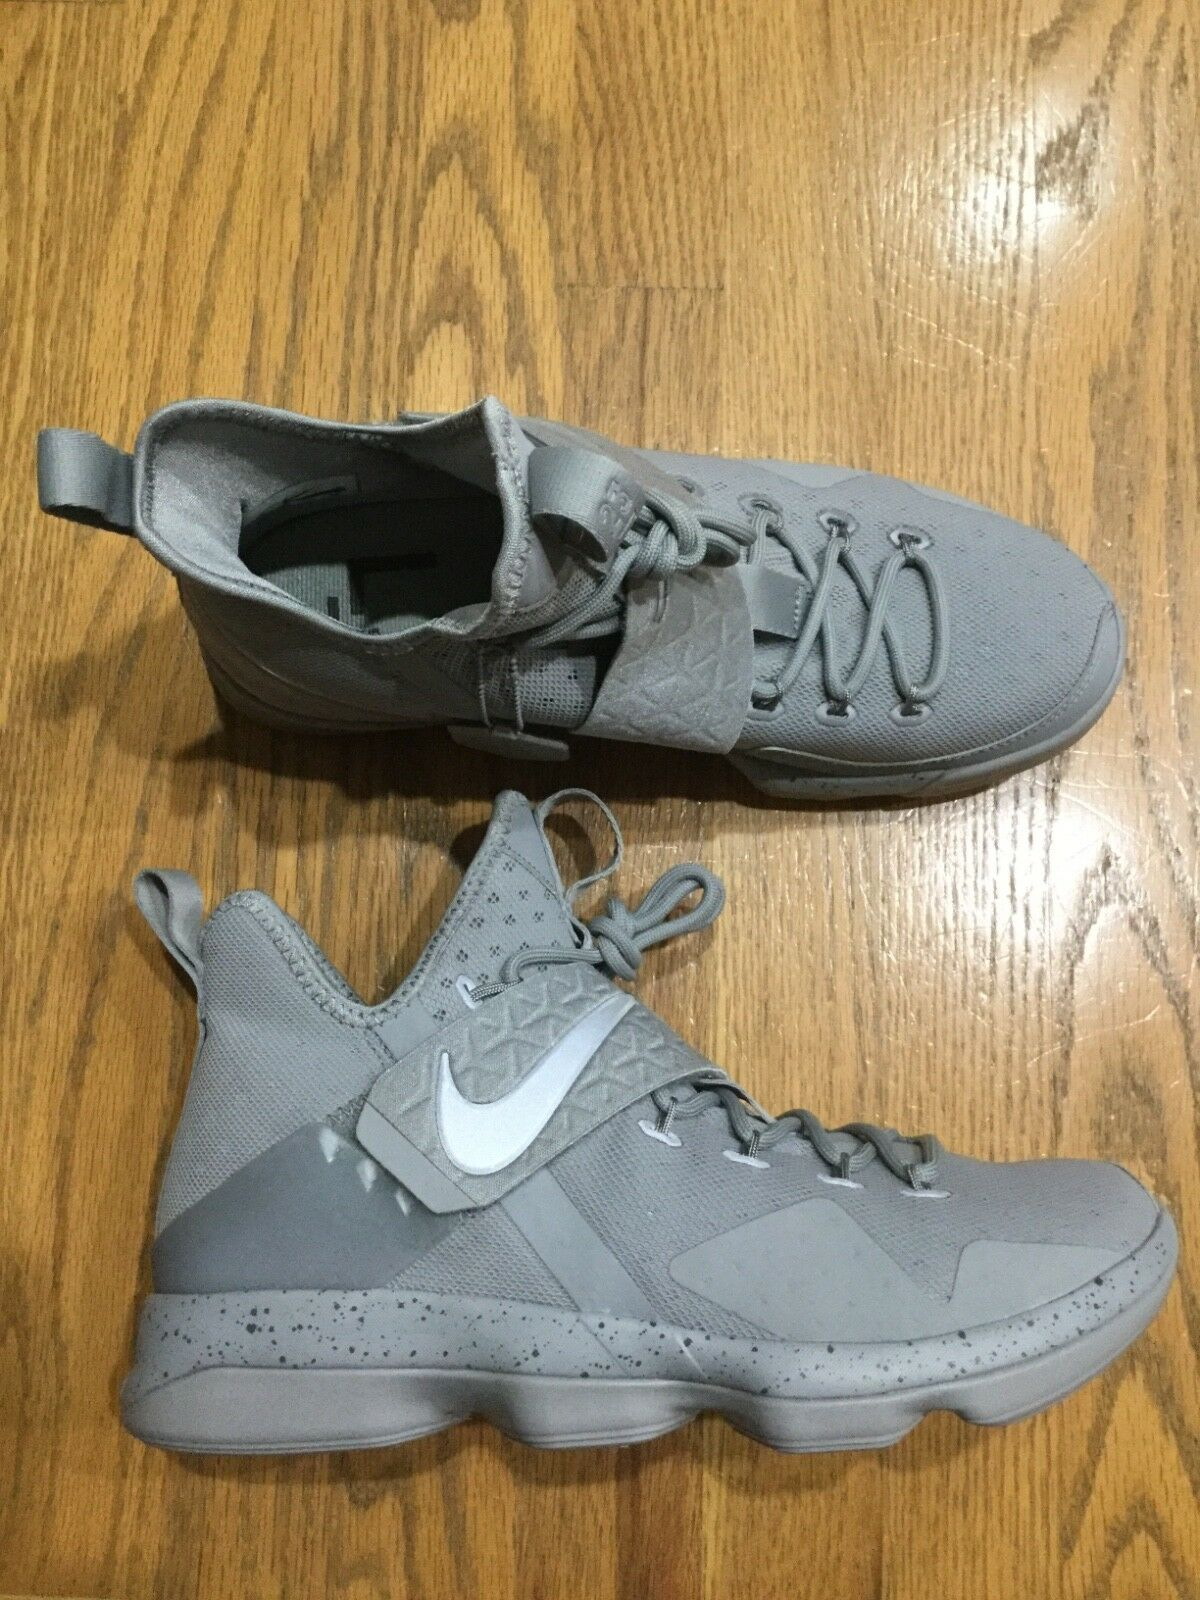 c8f870aaca34 New mens Nike LeBron James James James XIV 14 gray grey basketball high top  shoes Sz 10 NIB 824fd5